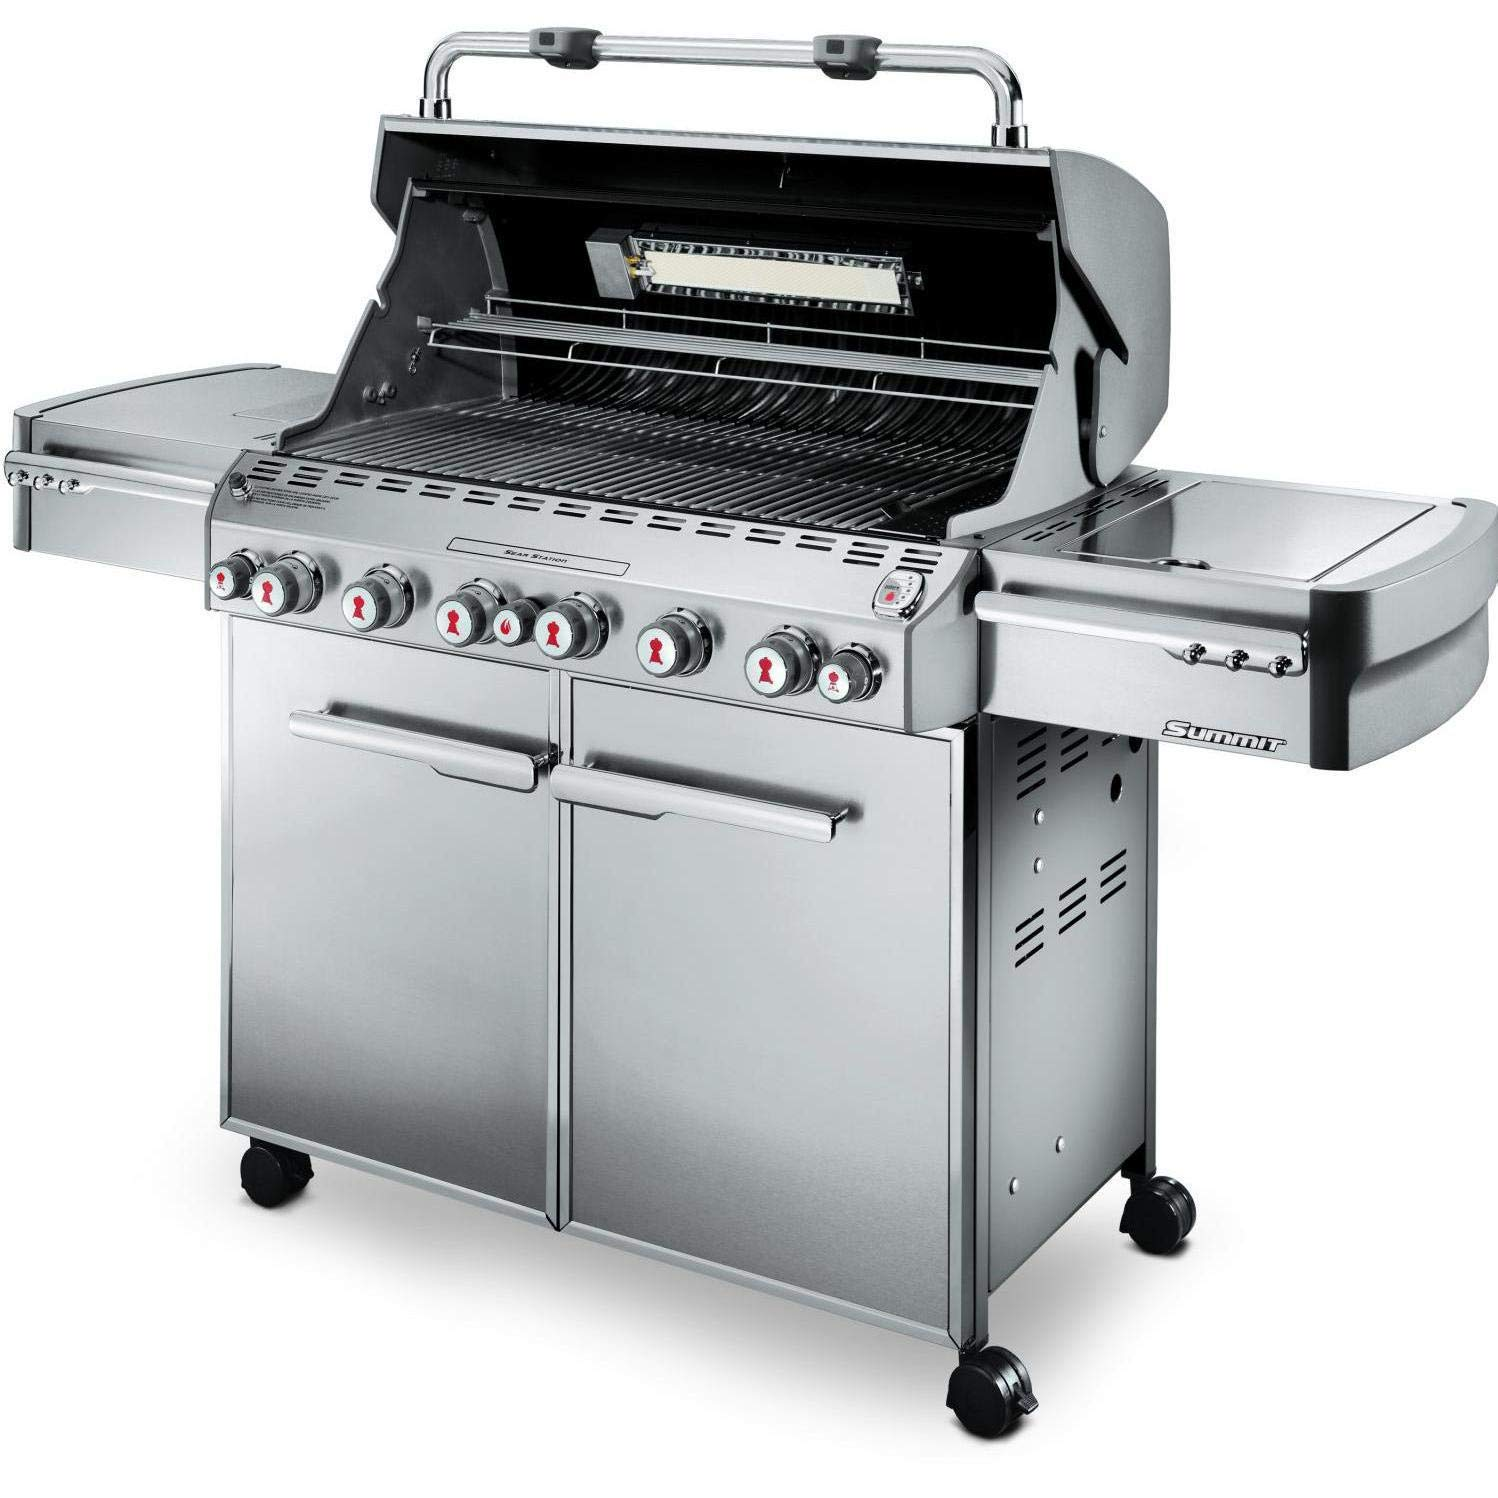 Best gas grills to buy: Broil King, Weber, Napoleon, and more